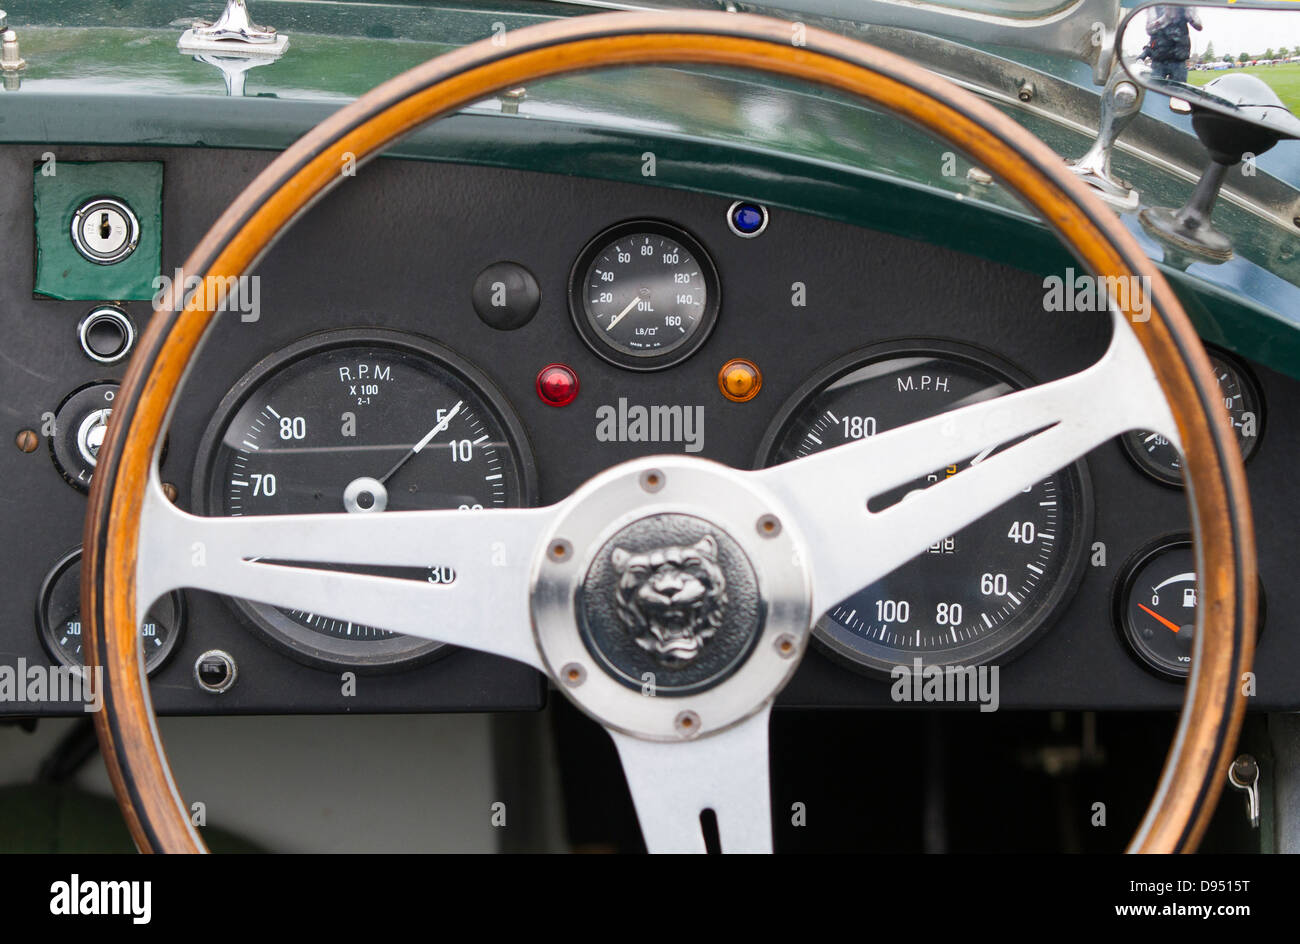 interior dashboard of a classic jaguar car pictured outdoors stock photo royalty free image. Black Bedroom Furniture Sets. Home Design Ideas